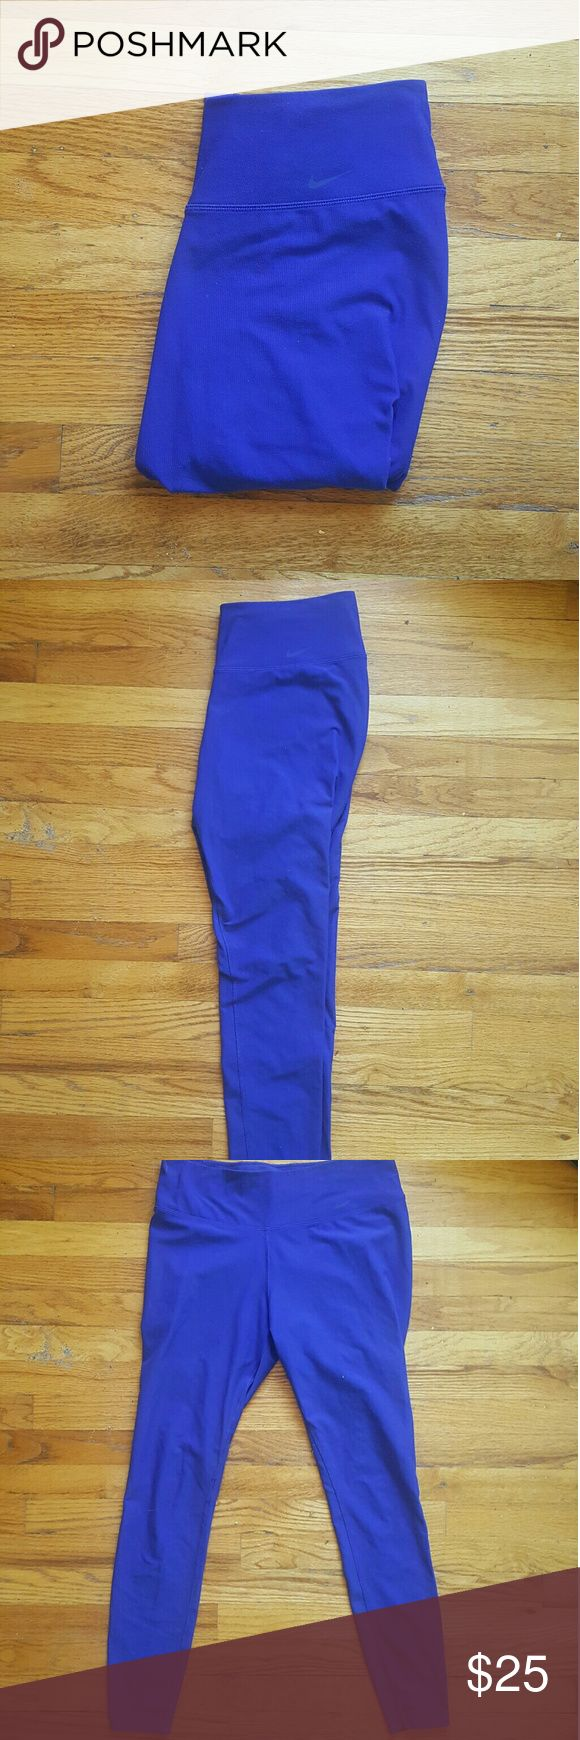 Nike Legend Dri Fit Pants -size Large (very tight fitting, could fit M or L) -full length -no signs of wear -beautiful royal blue color Nike Pants Leggings